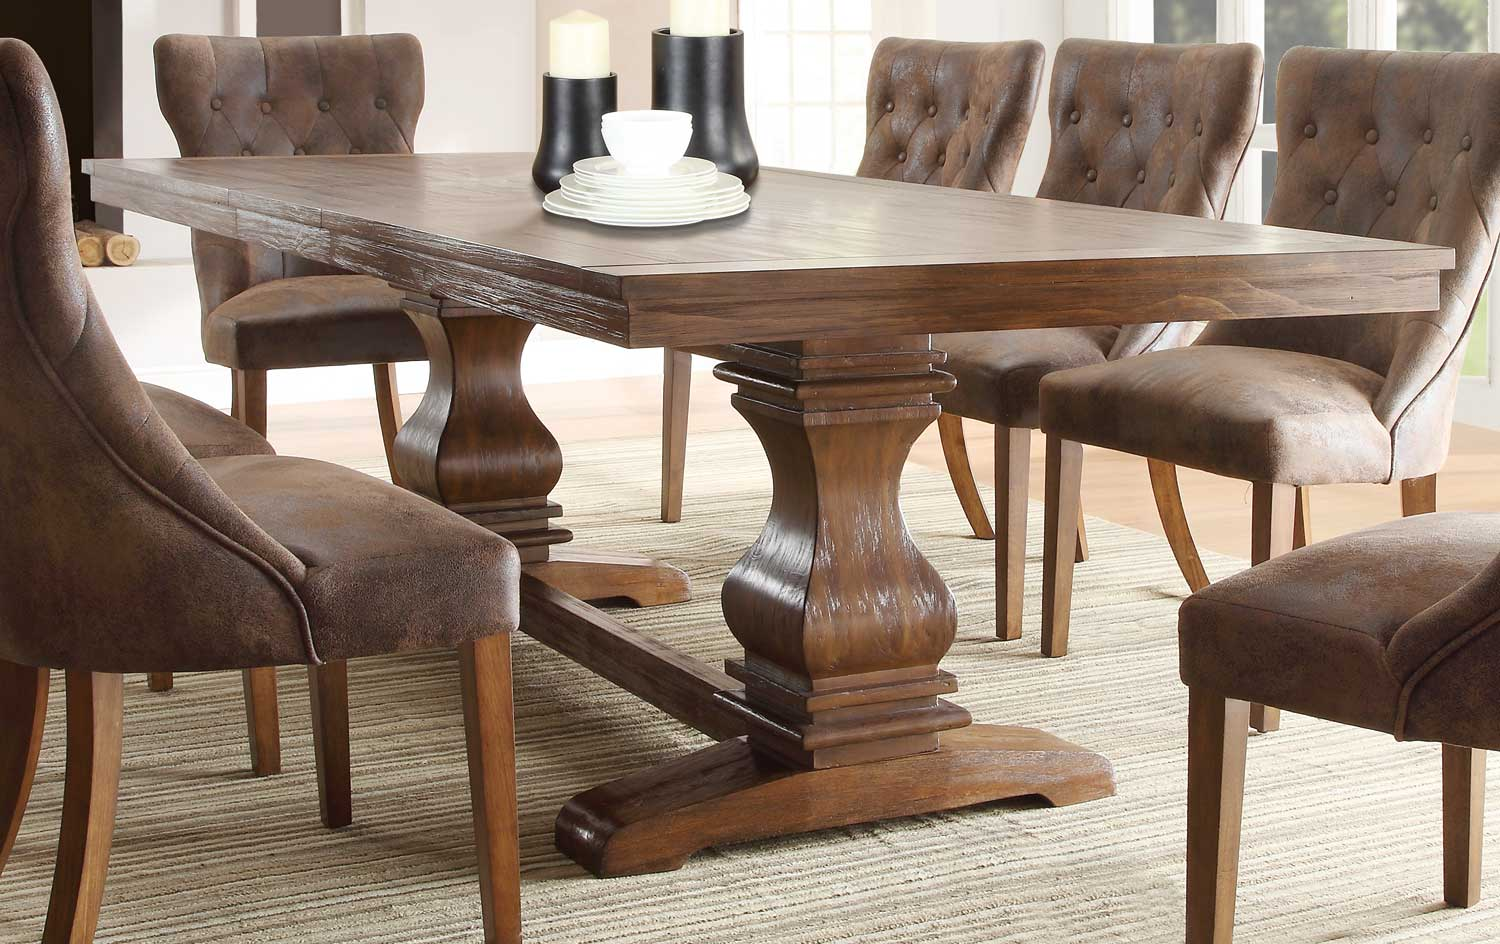 Dining Room Furniture Rustic Homelegance Marie Louise Dining Table Rustic Oak Brown